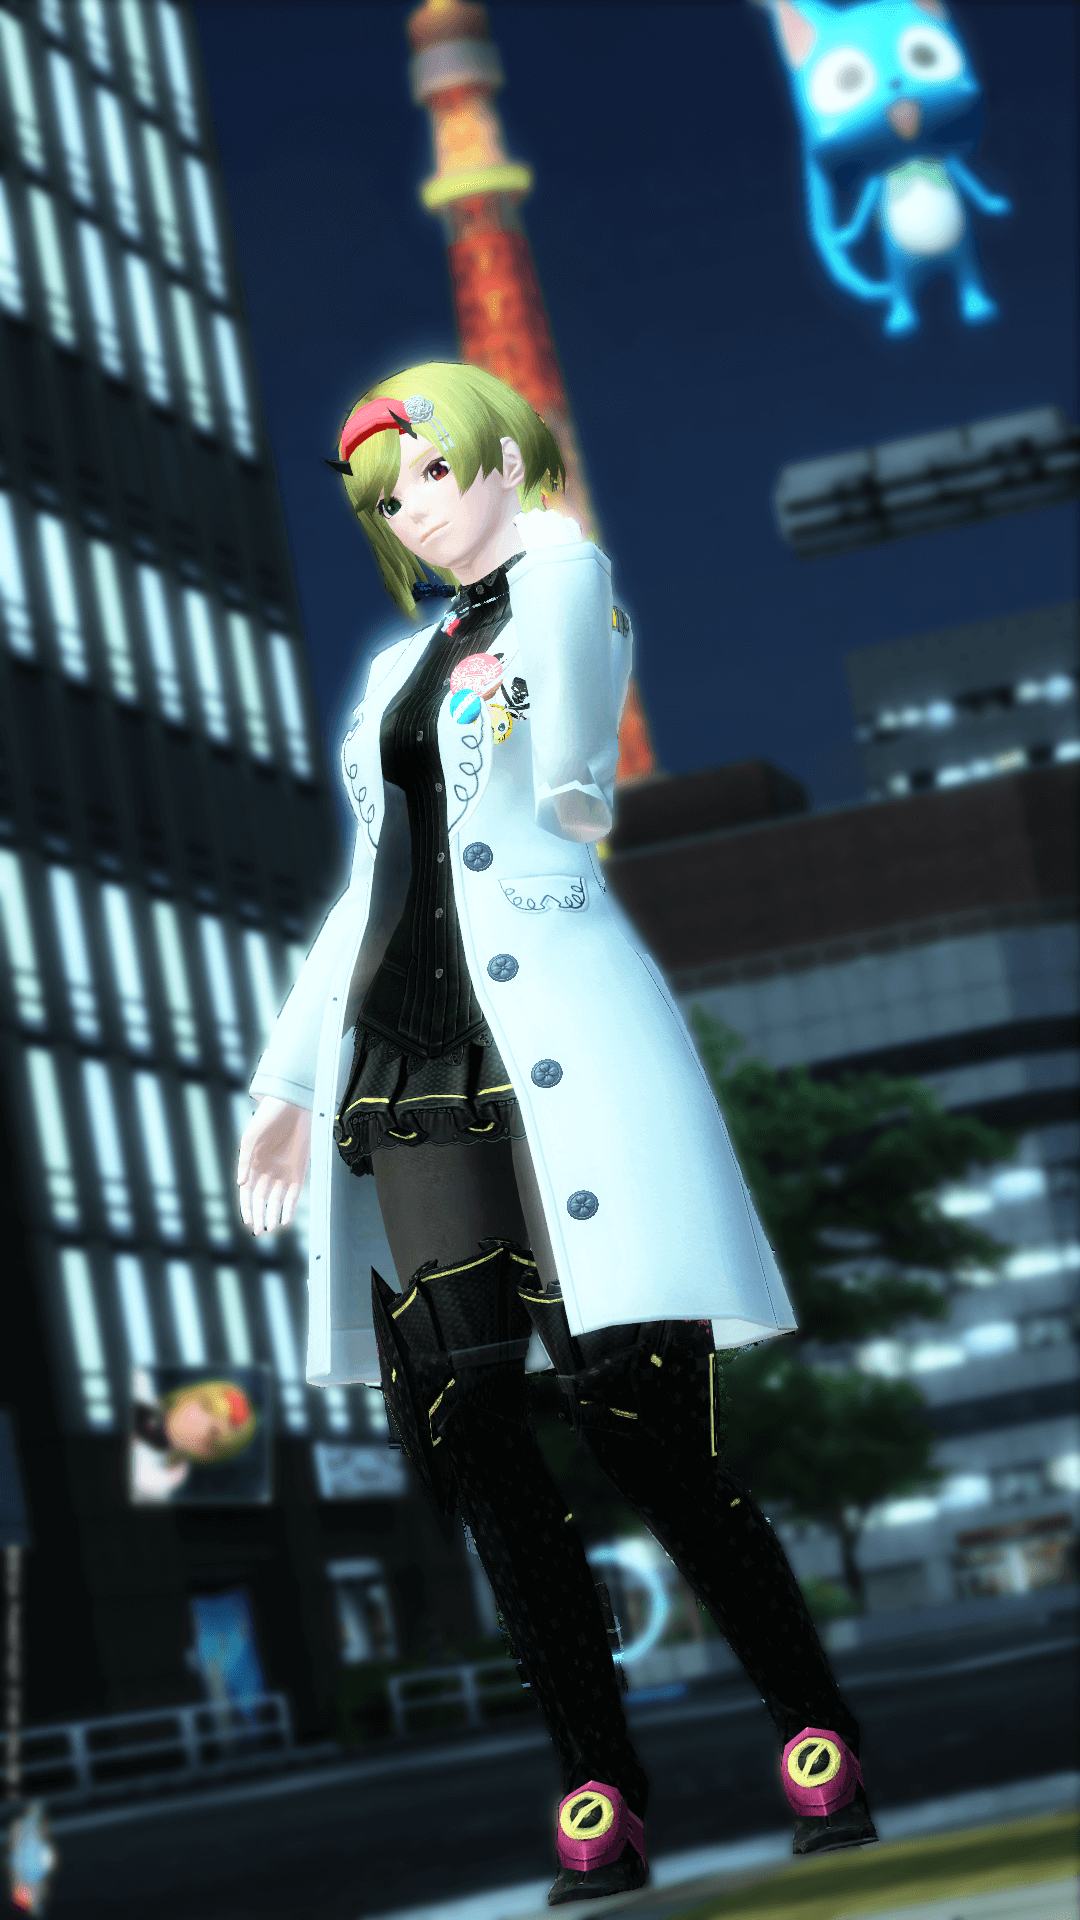 pso20160212_170259_002.png